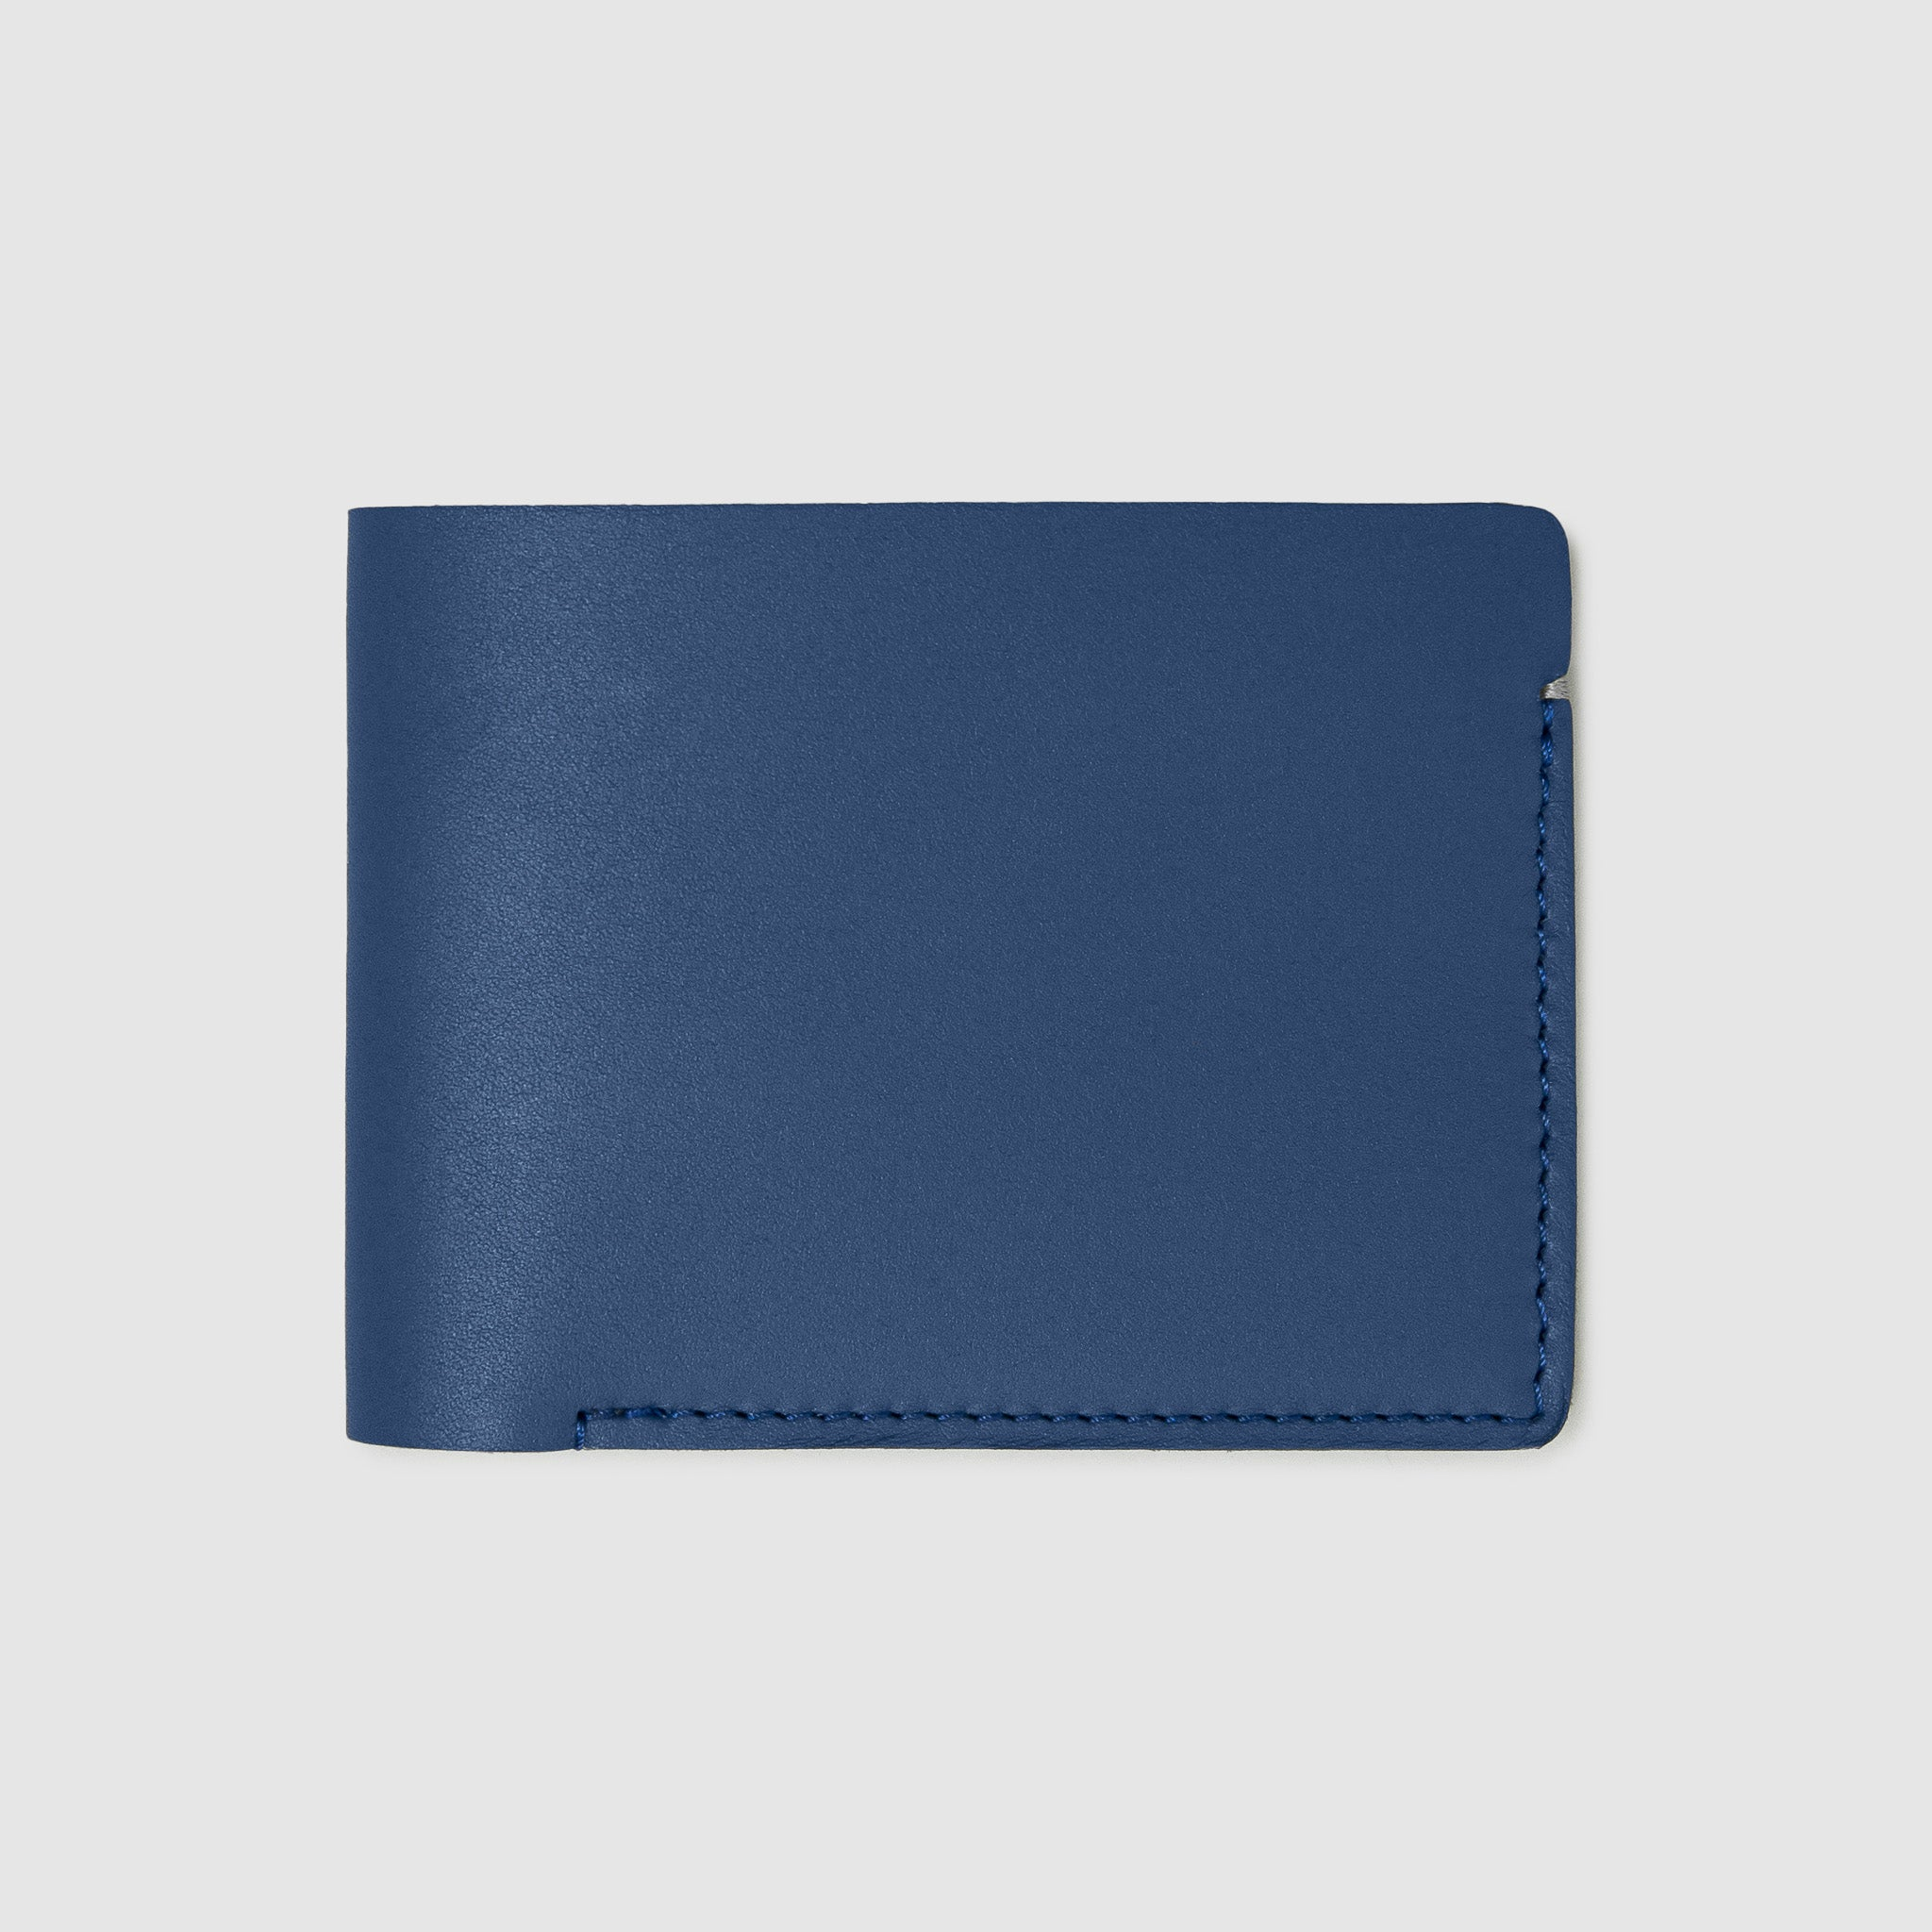 Anson Calder Billfold Wallet French Calfskin Leather _cobalt